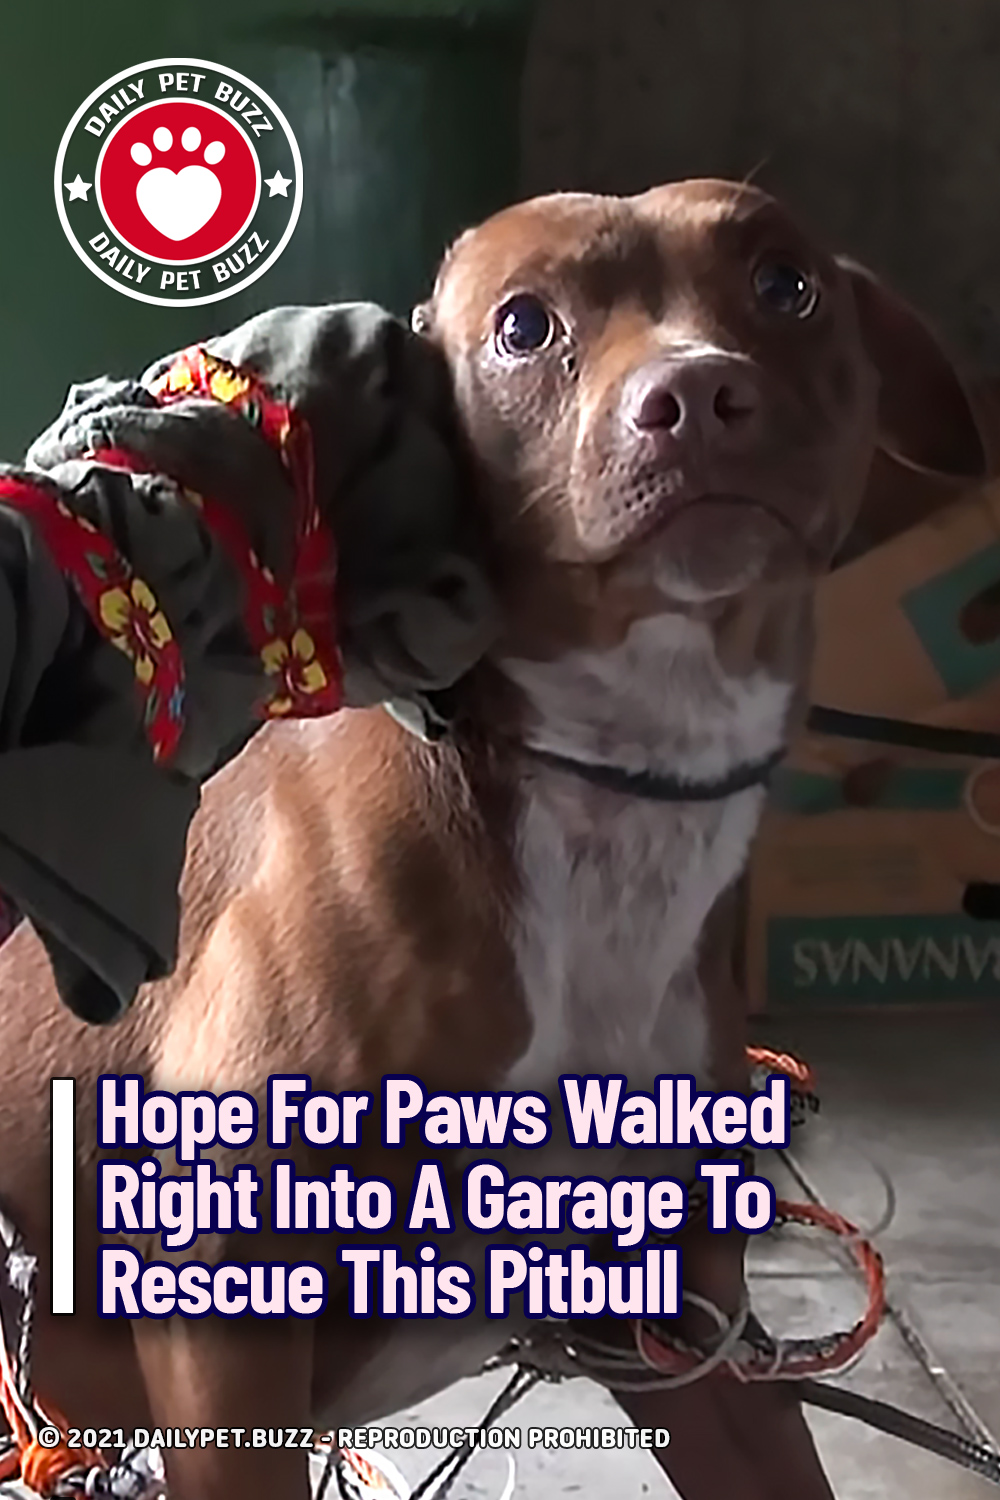 Hope For Paws Walked Right Into A Garage To Rescue This Pitbull